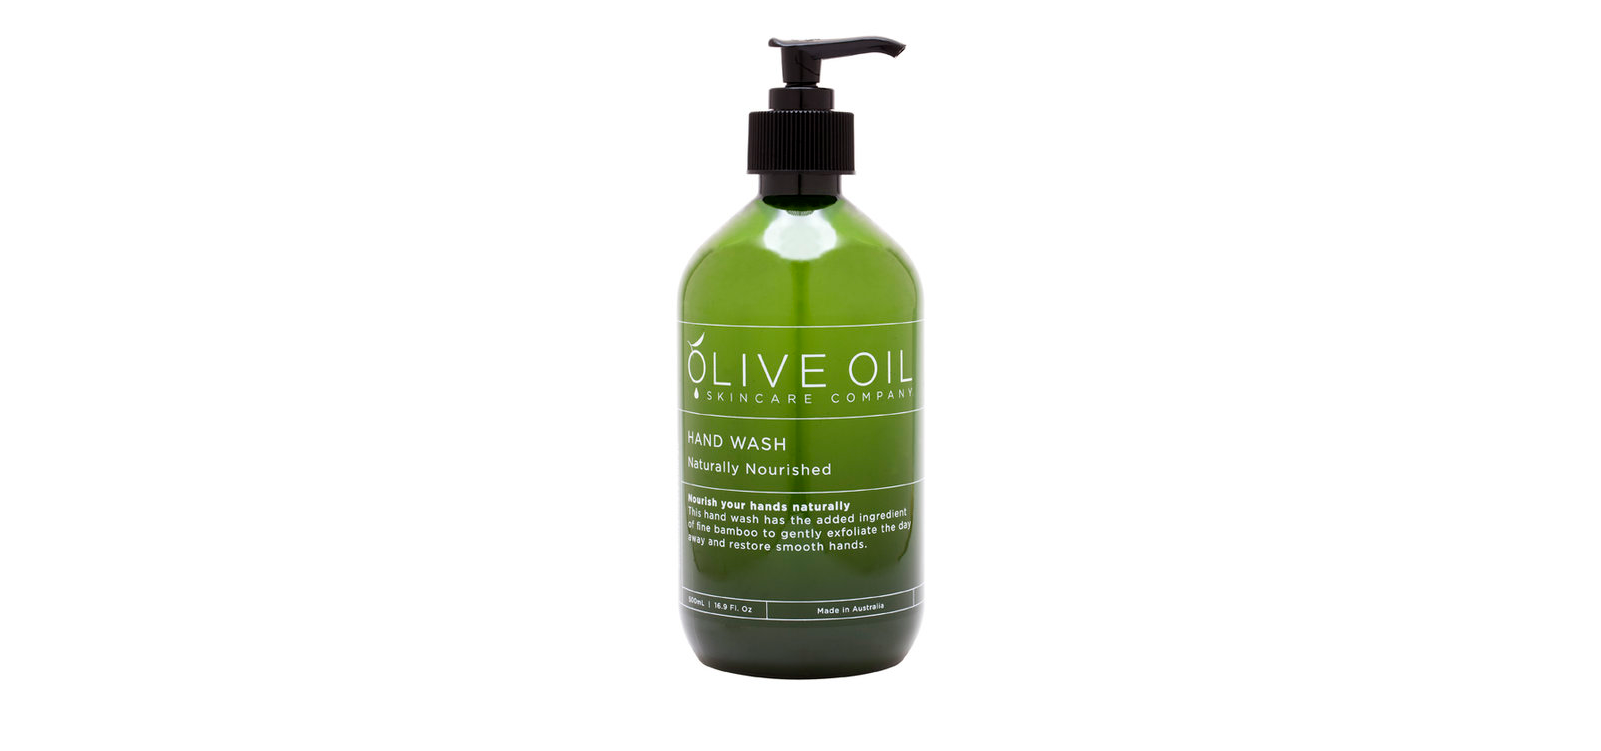 Olive Oil Skincare Company Naturally Nourished Hand Wash